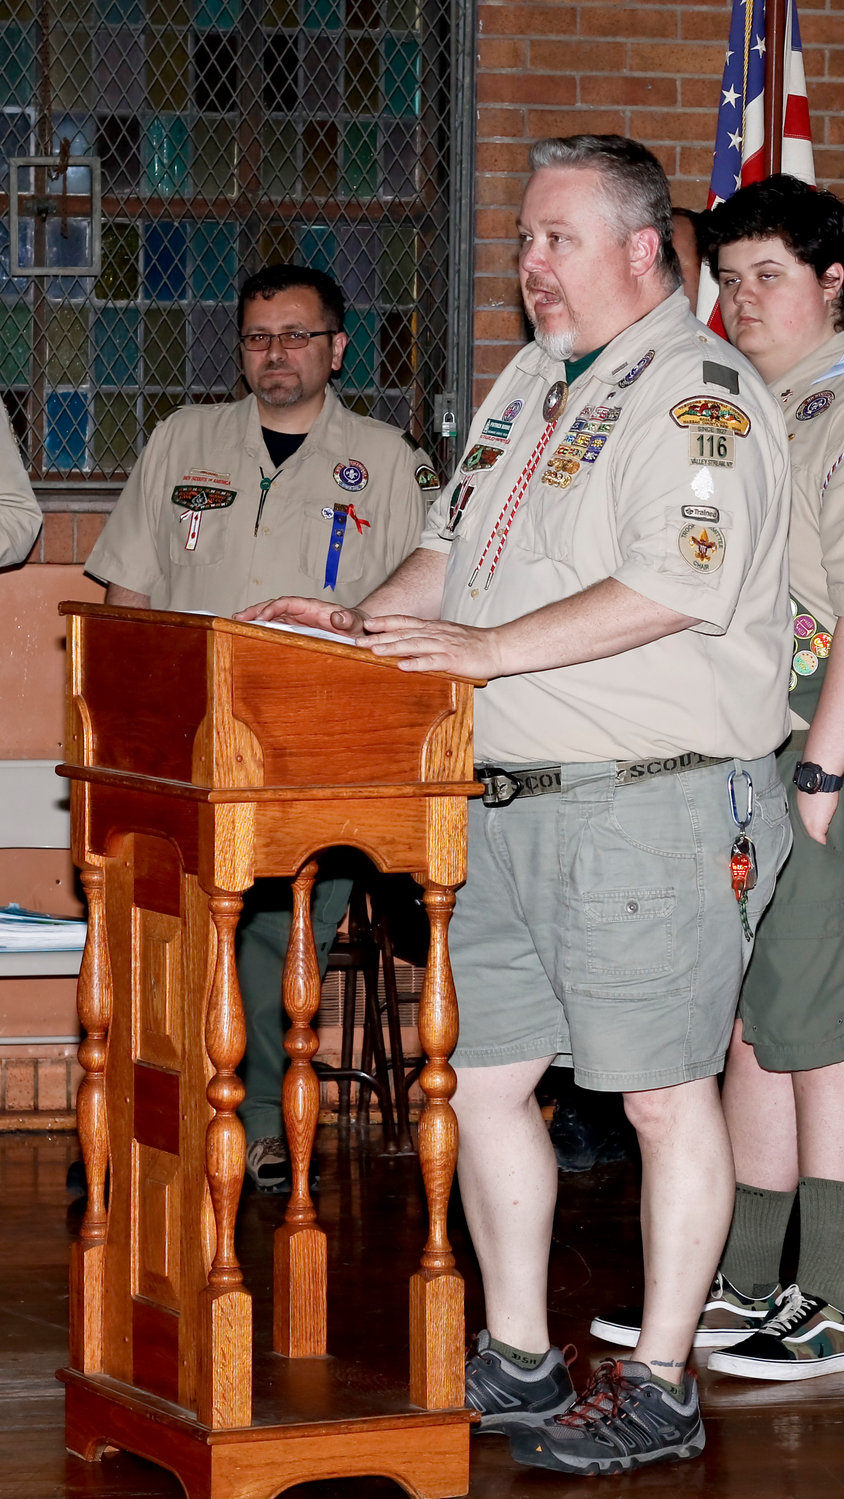 Committee Chairman Patrick Burke spoke of  scouting at the ceremony.